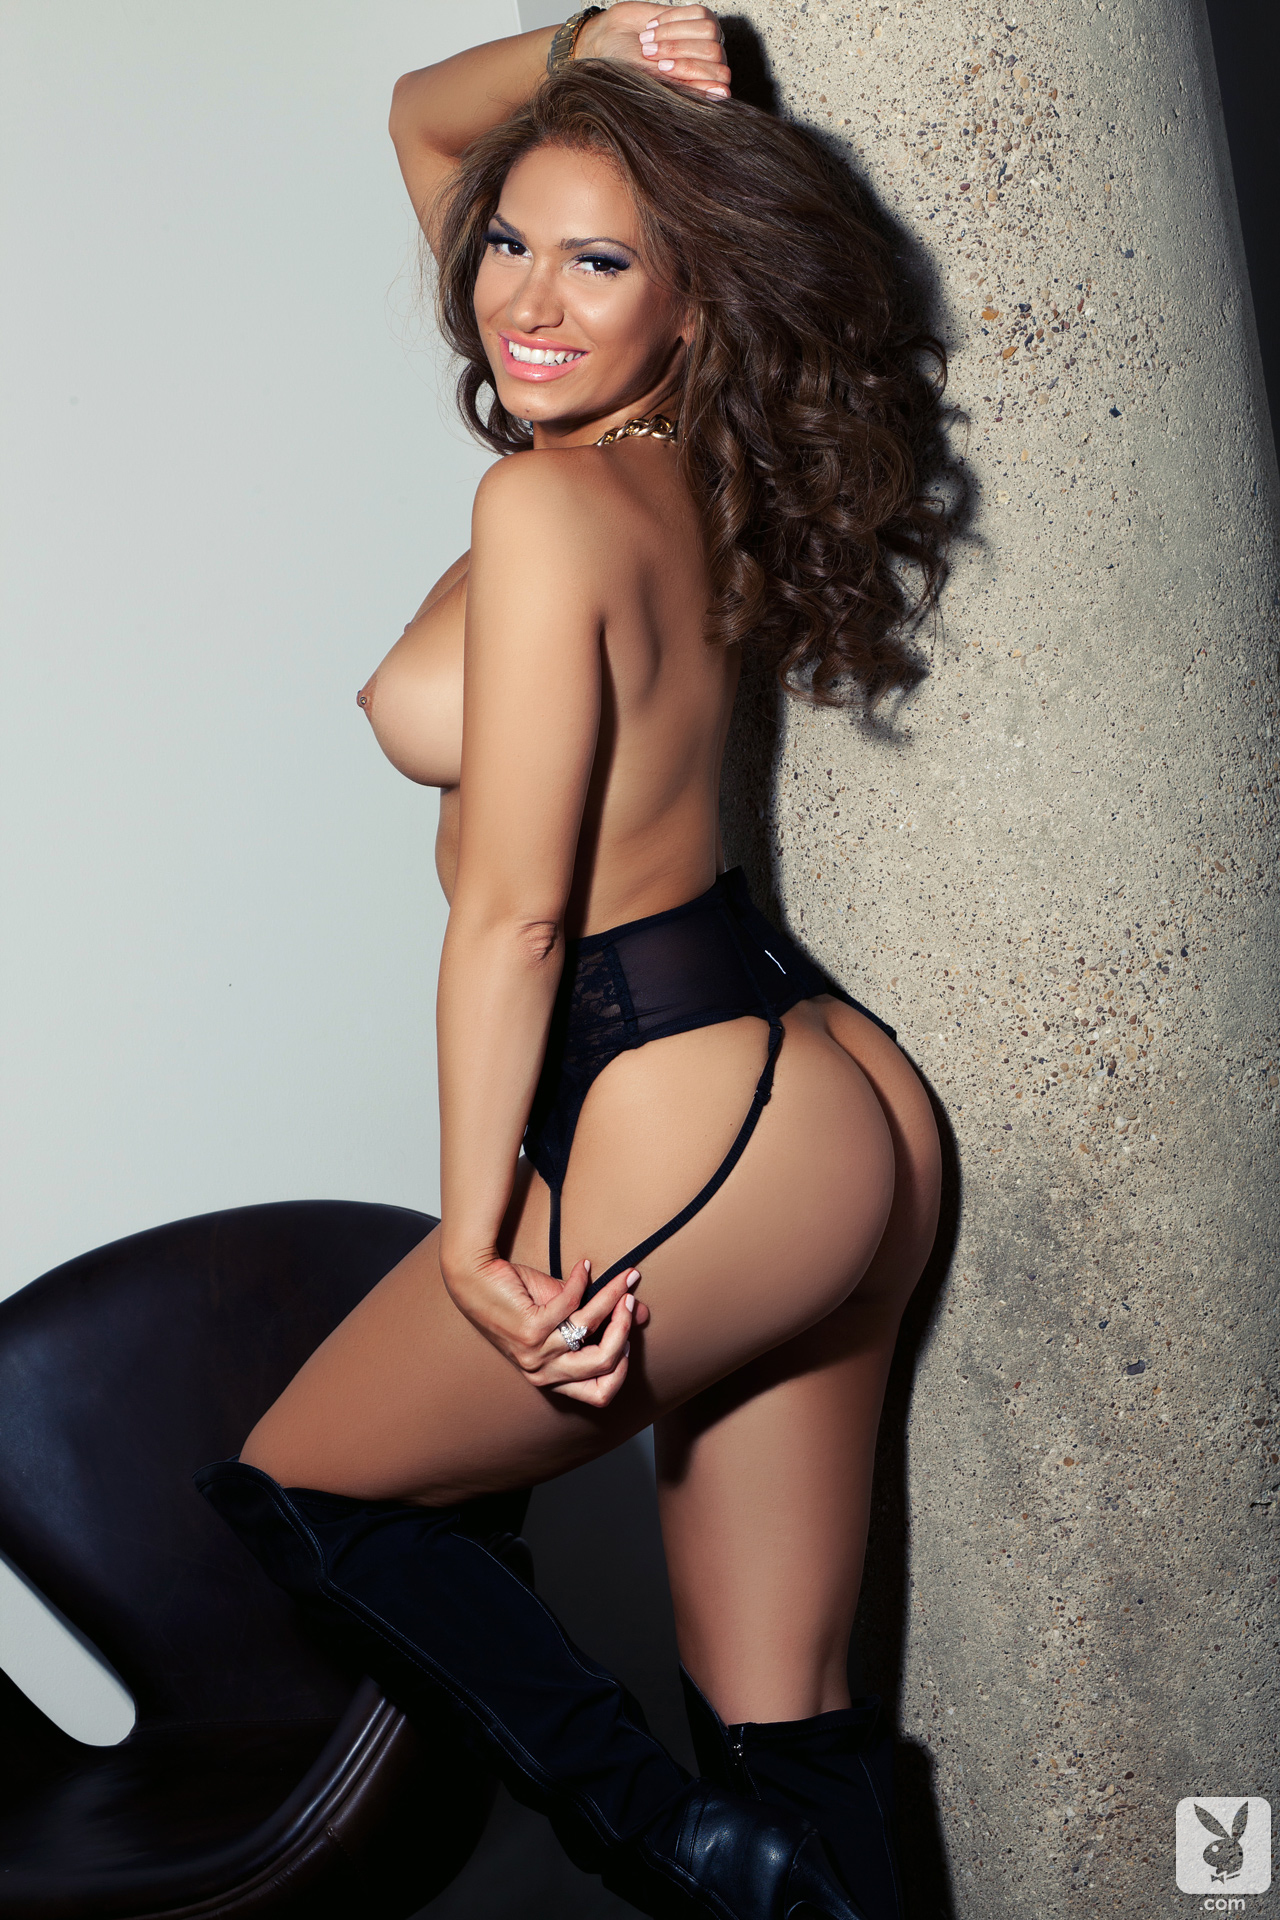 Reby sky knee high boots nude playboy 14 RedBust